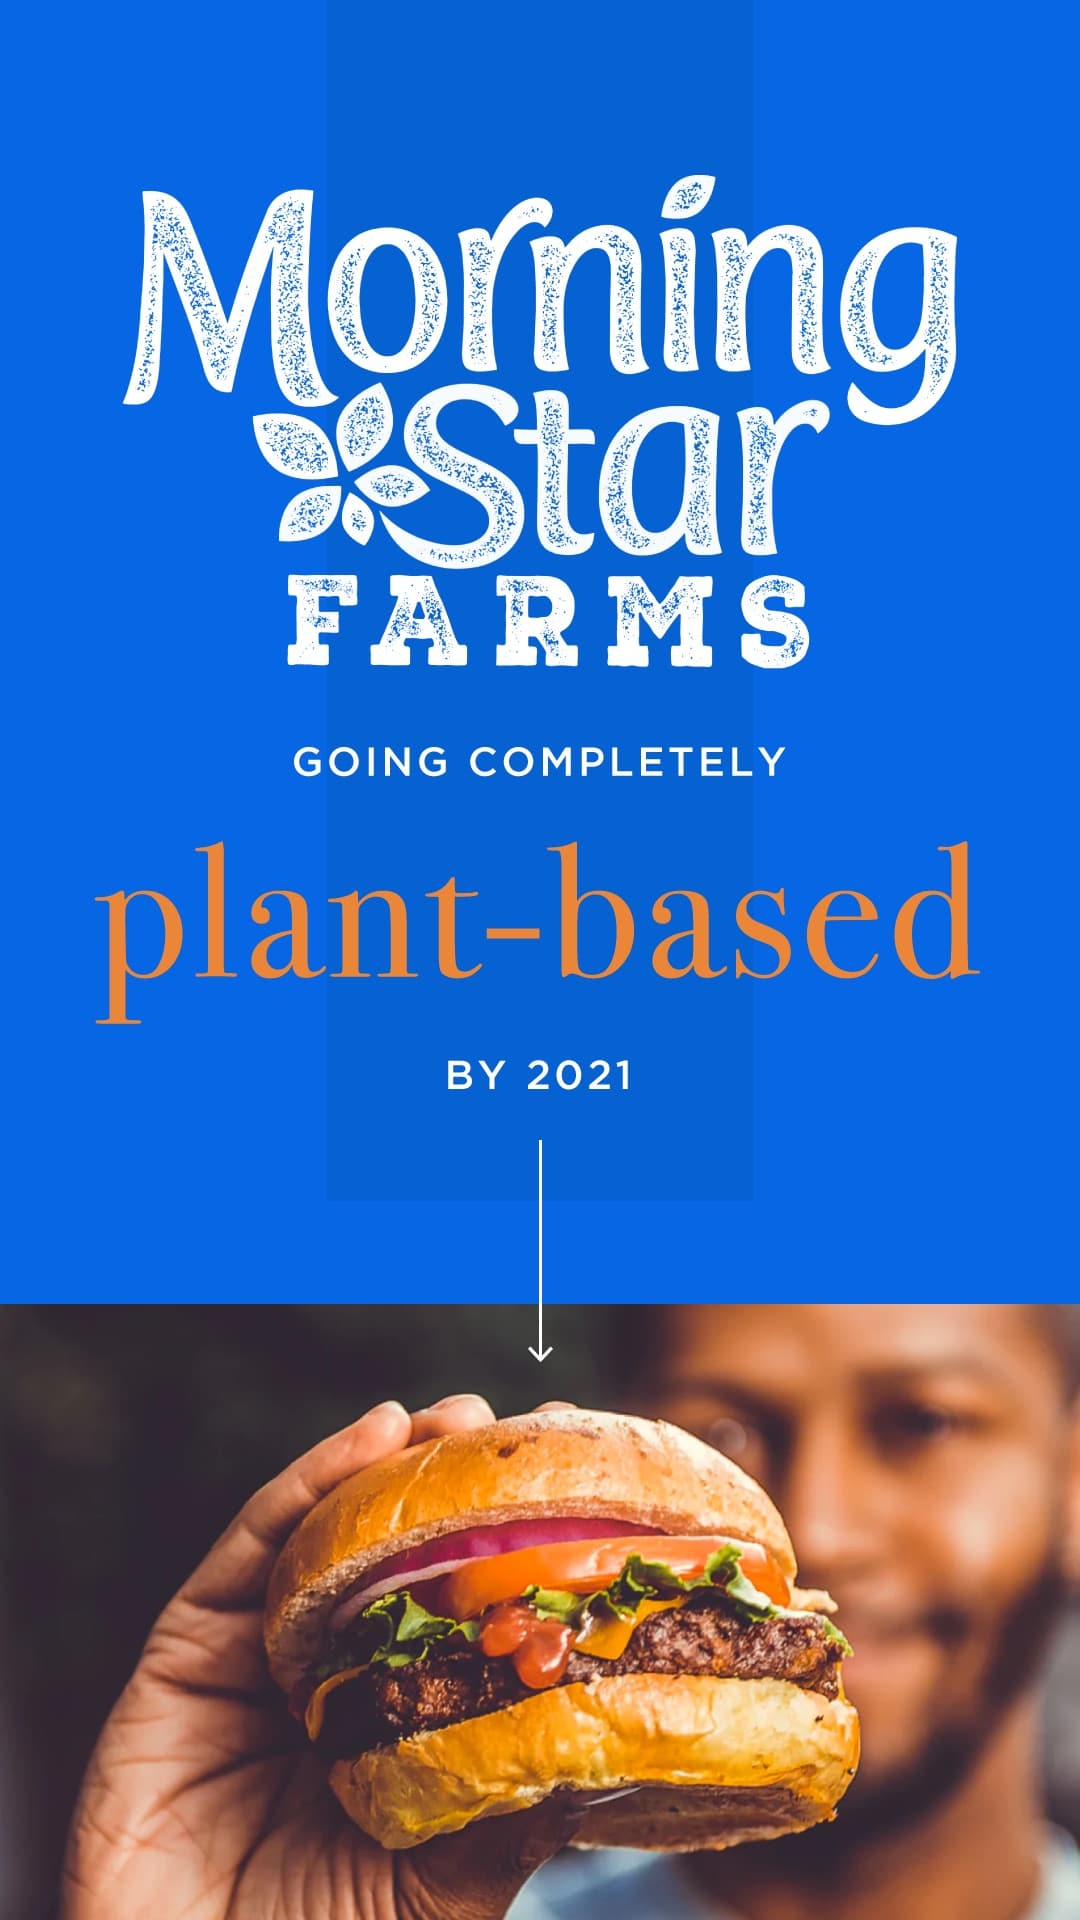 Winning! MorningStar Farms Going Completely Plant-Based by 2021